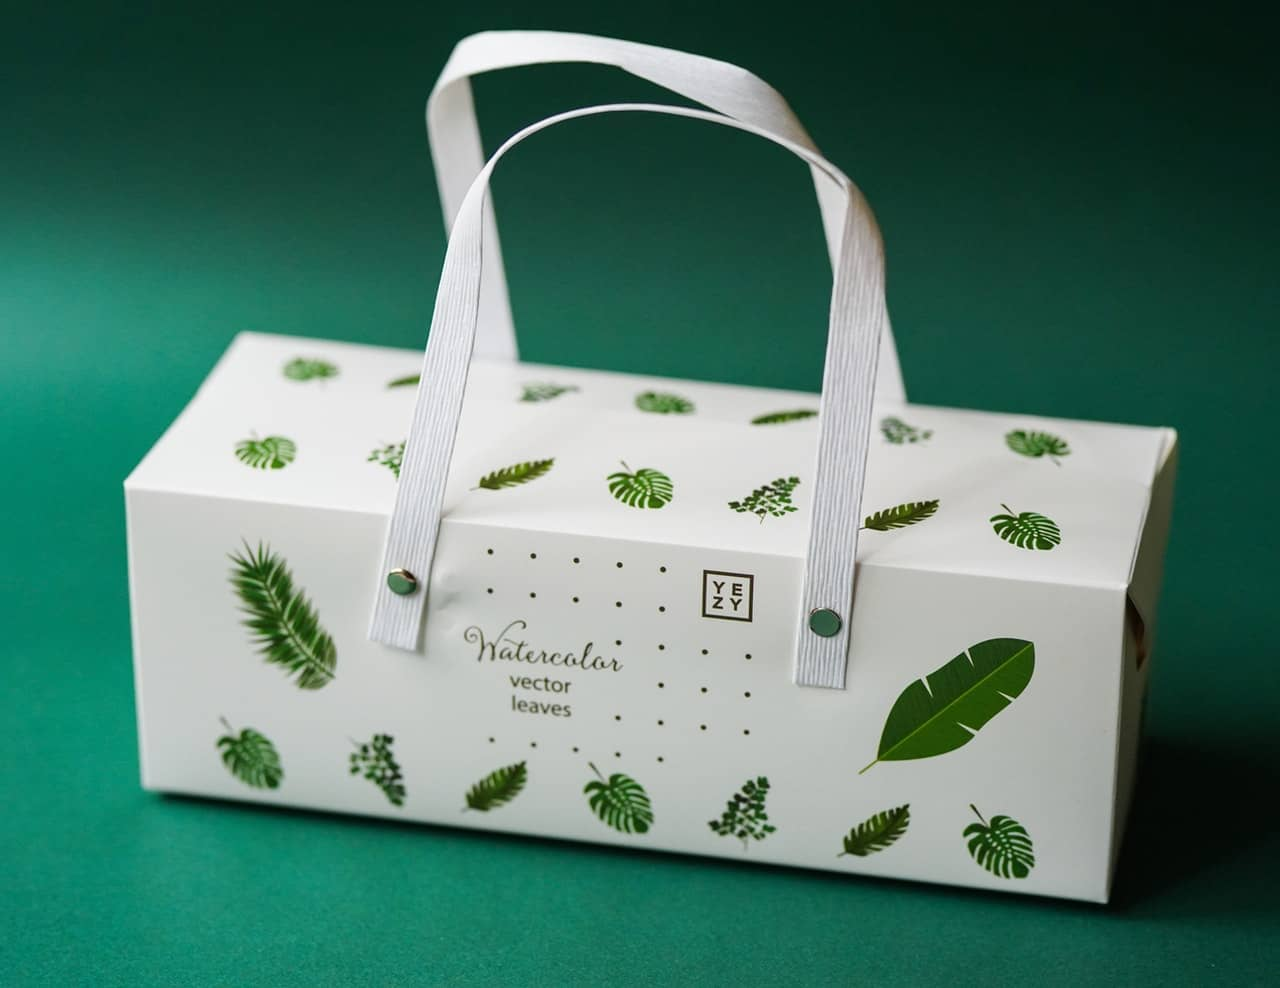 Irresistible Reasons Why Product Packaging Is Essential